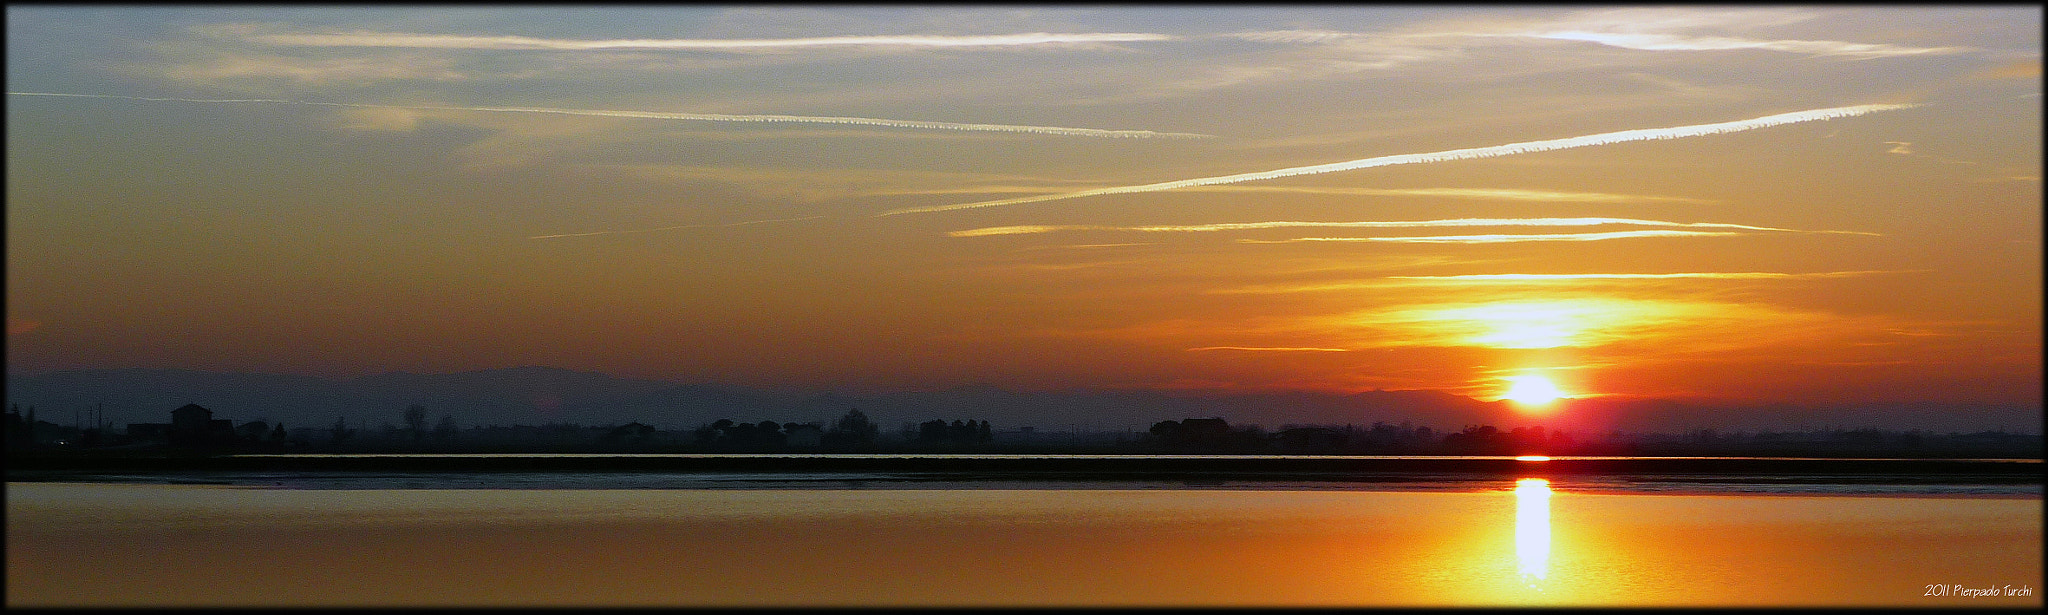 Photograph Sunset by Pierpaolo Turchi on 500px